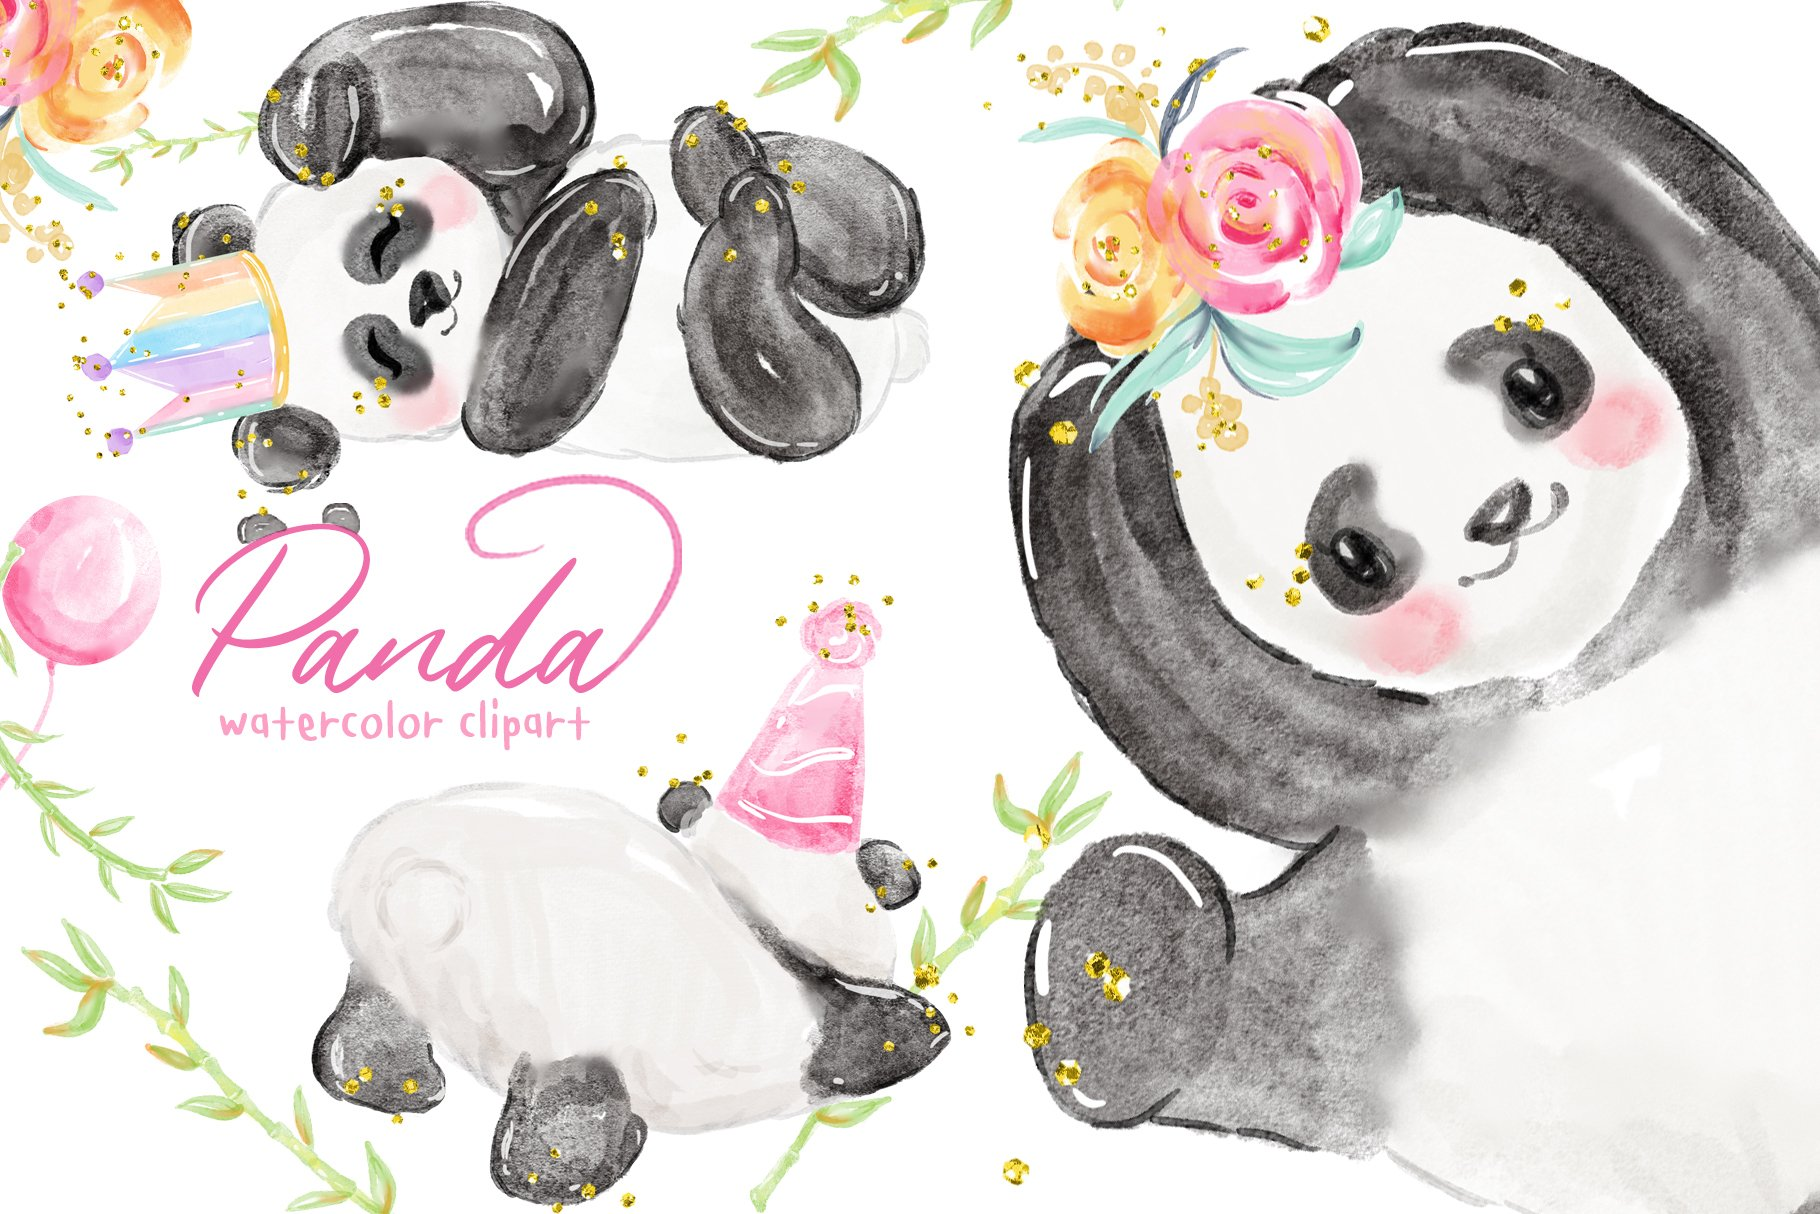 Panda love is in the air illustration watercolor 10 x 15